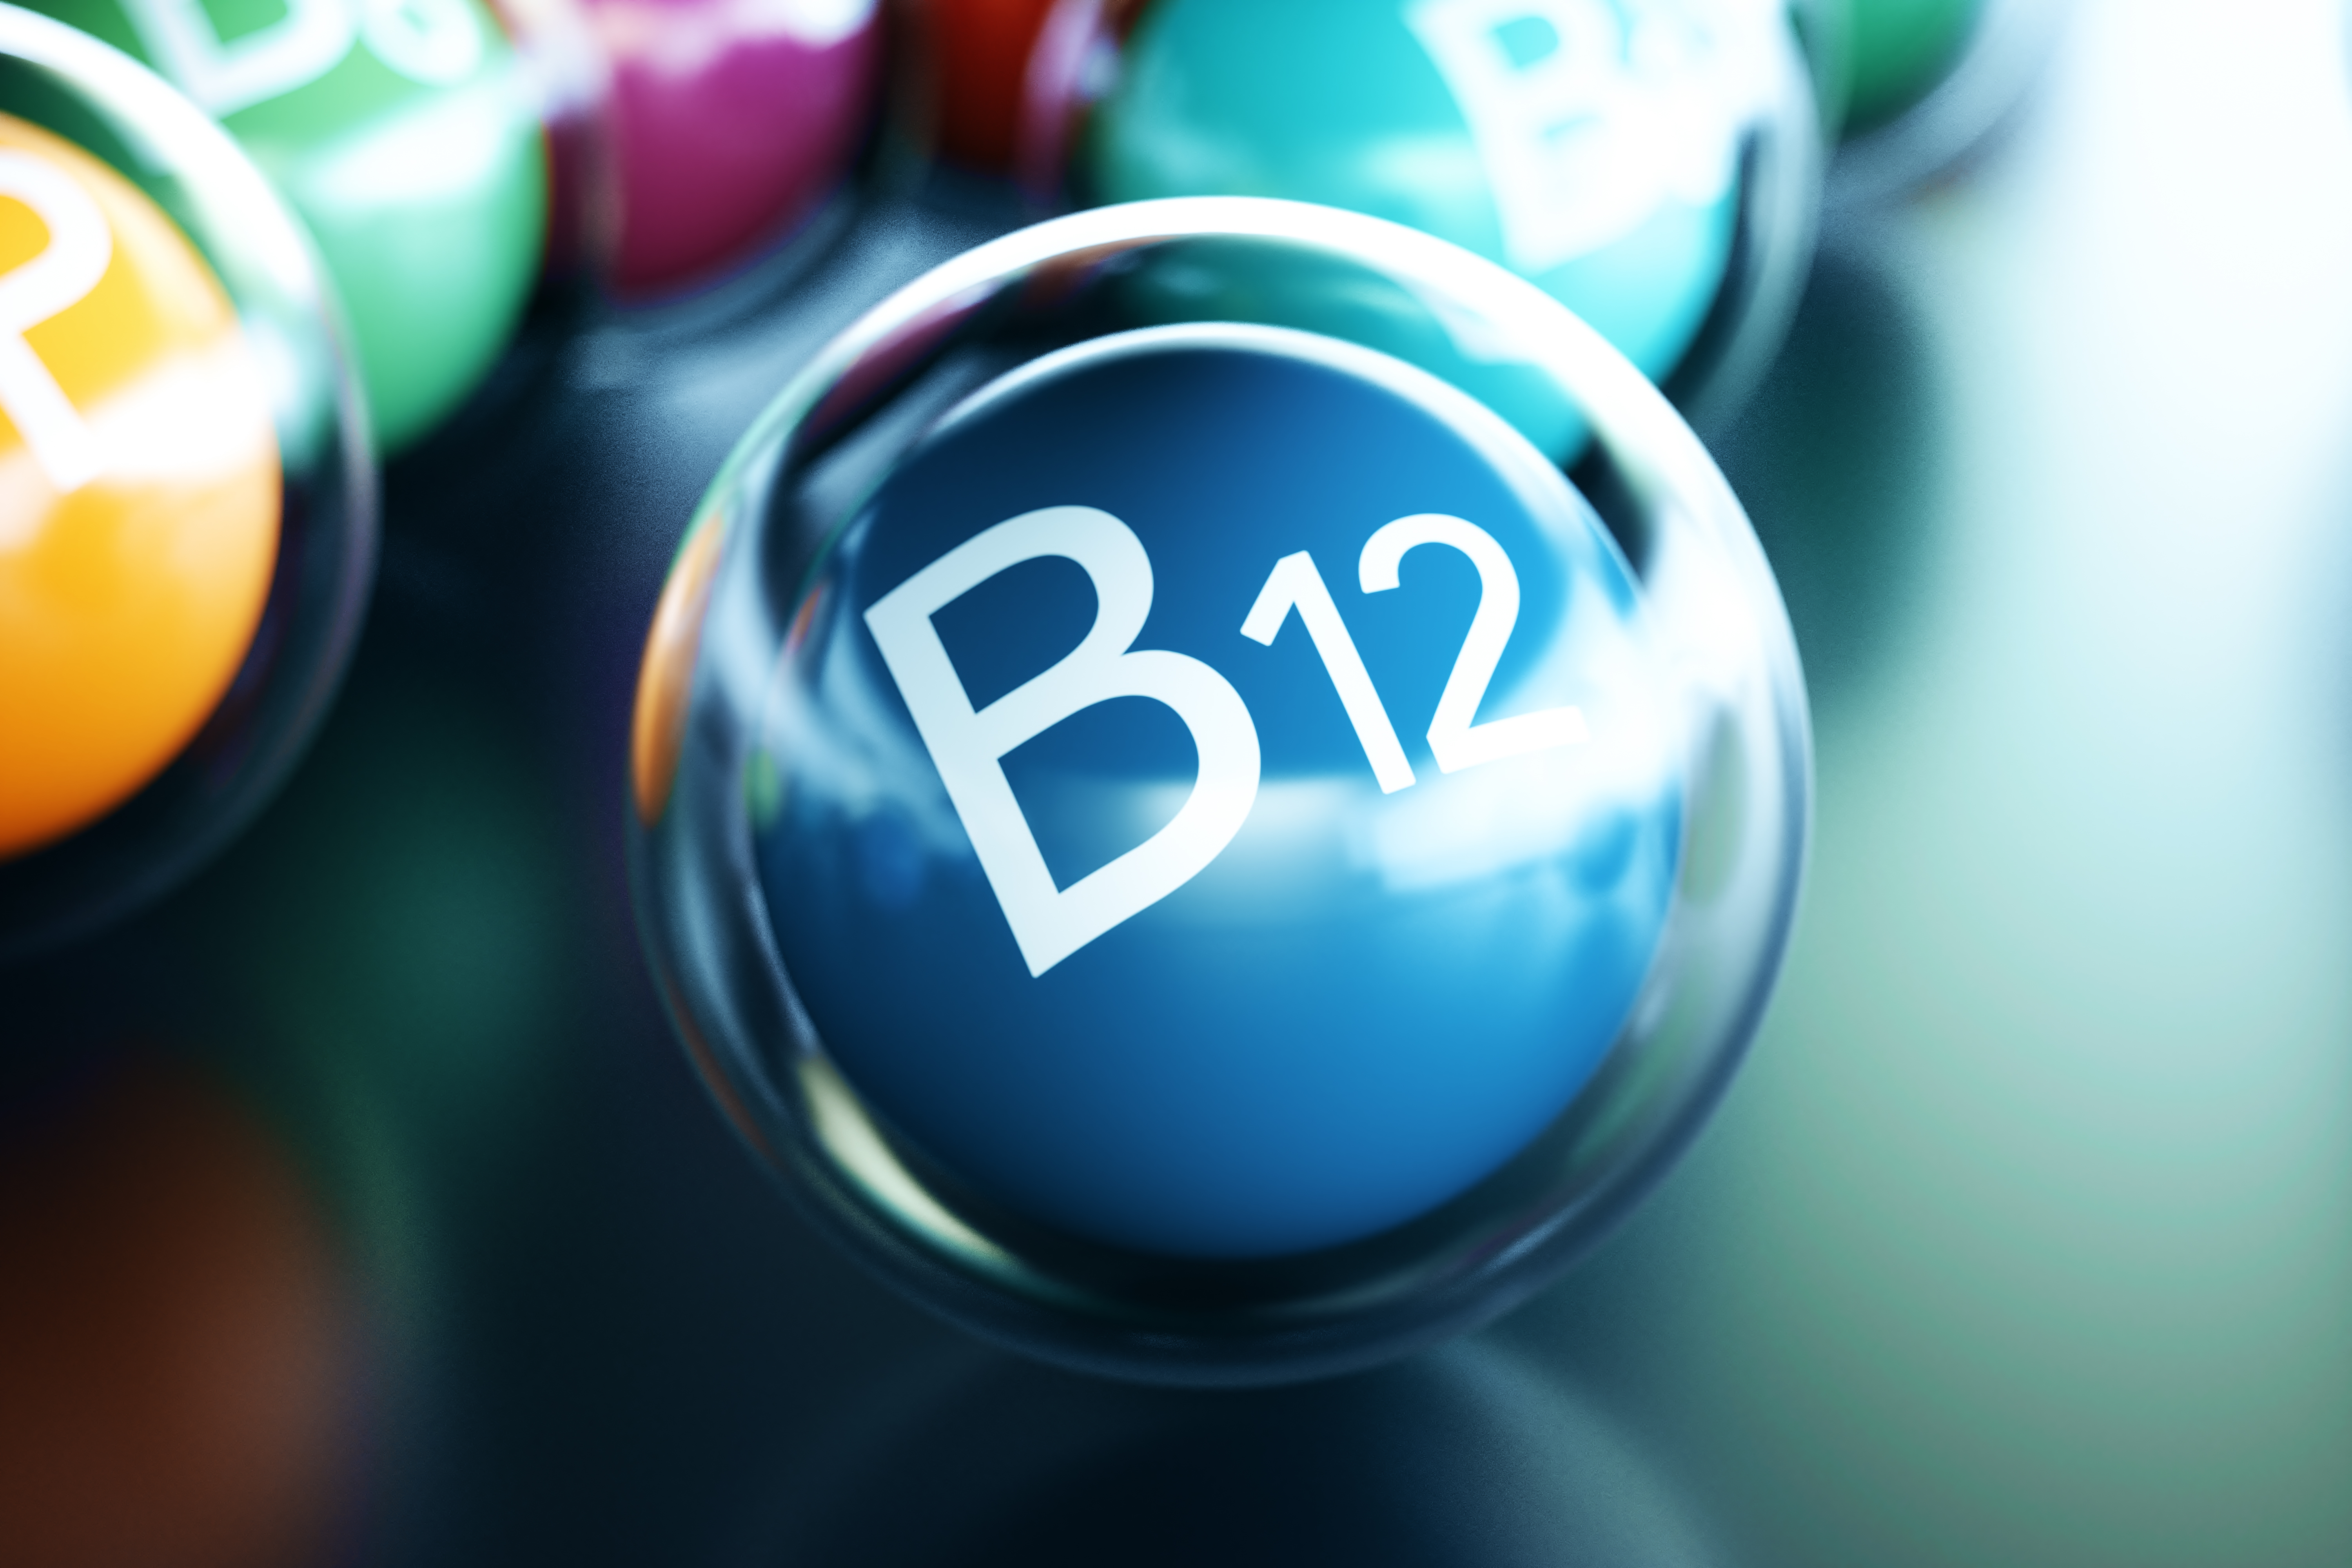 Vitamin B12 and progression